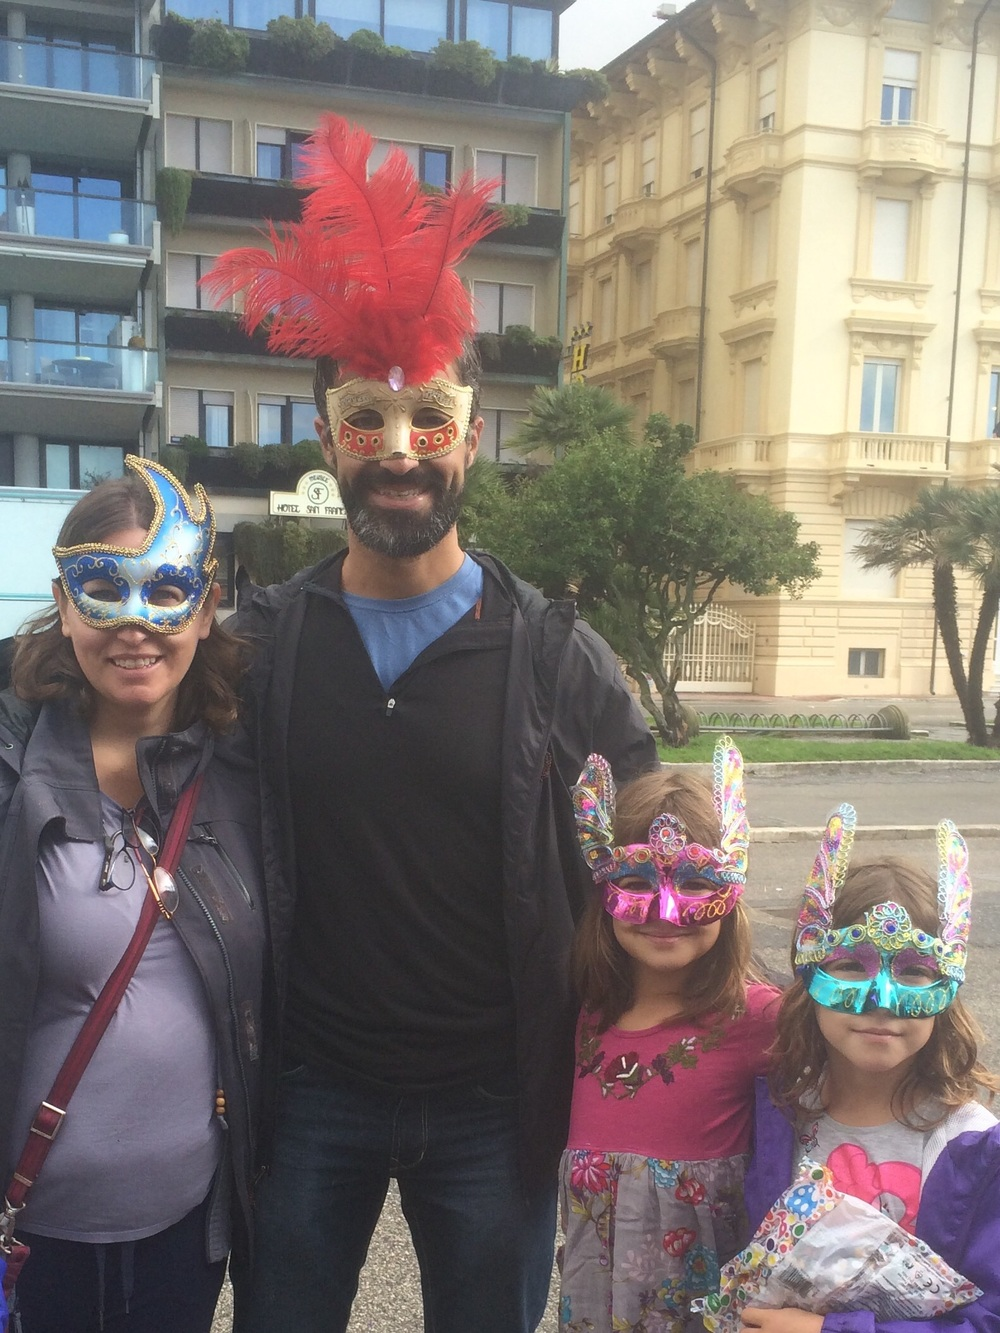 Carnevale is a time to dress up...kind of like Halloween!